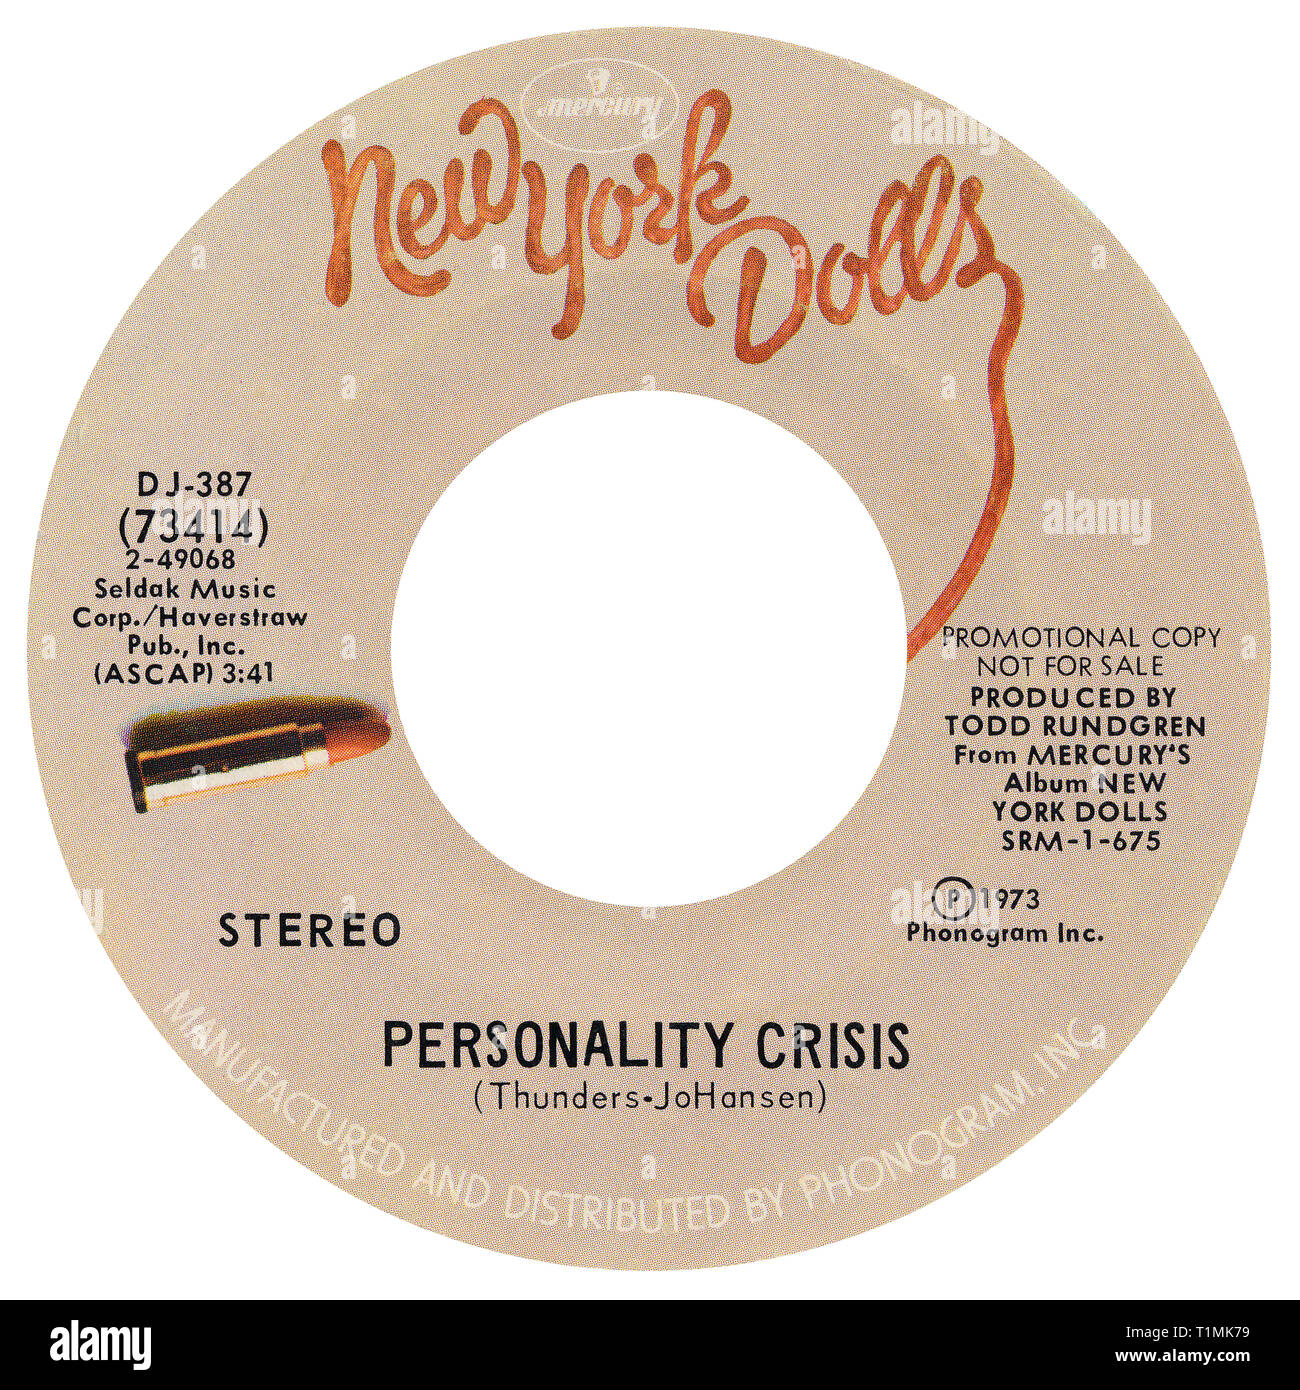 US 45 rpm promotional single of Personality Crisis by the New York Dolls on the Mercury label from 1973. Written by David Johansen and Johnny Thunders and produced by Todd Rundgren. Stock Photo